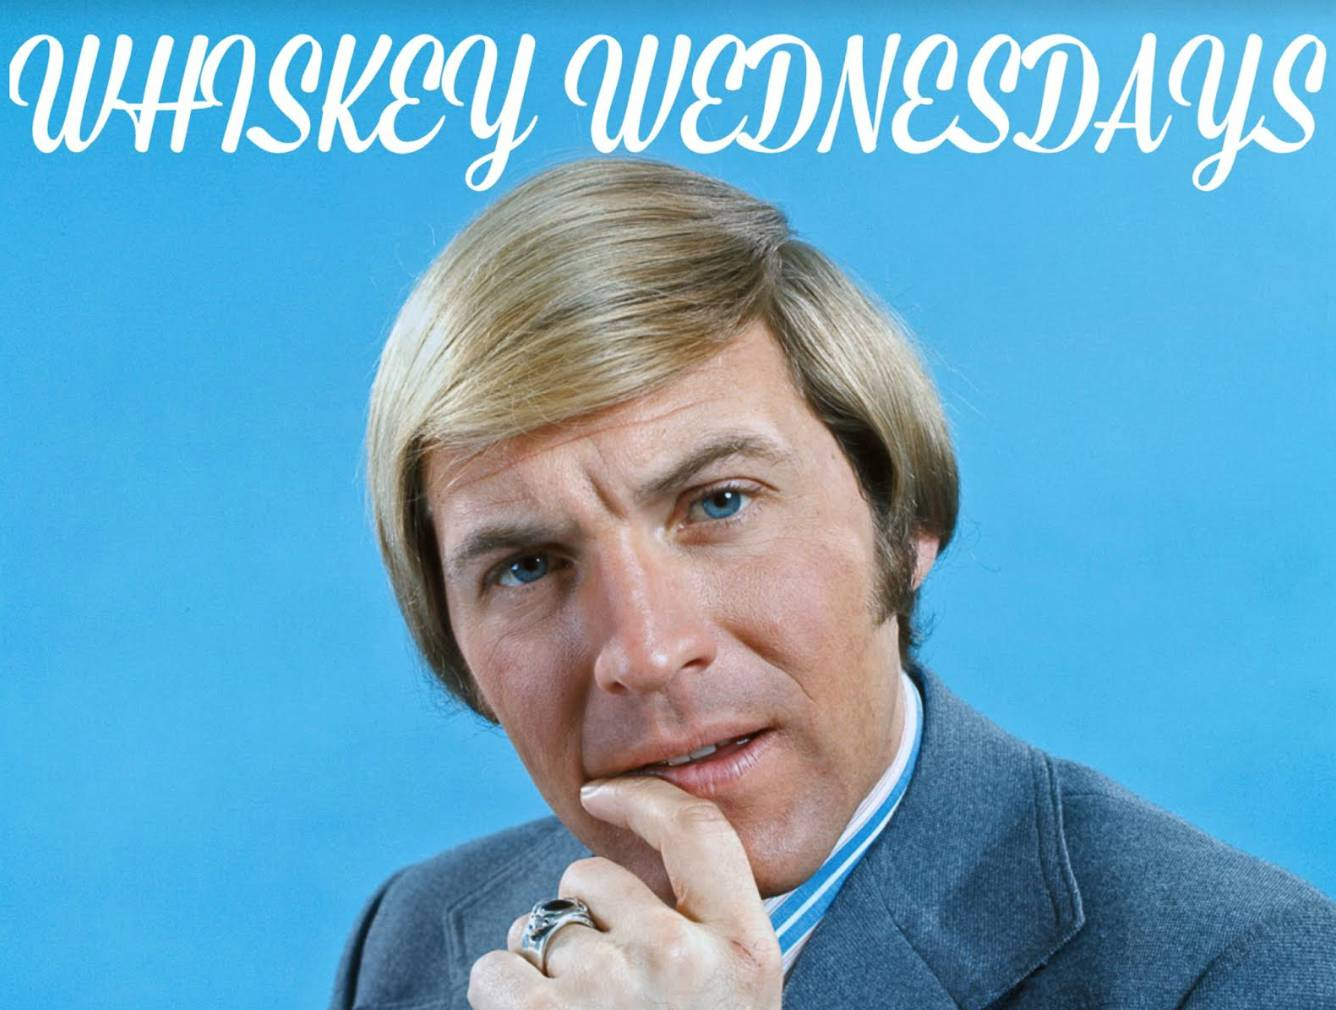 Whiskey Wednesday Live & Happy Hour (til 7pm)